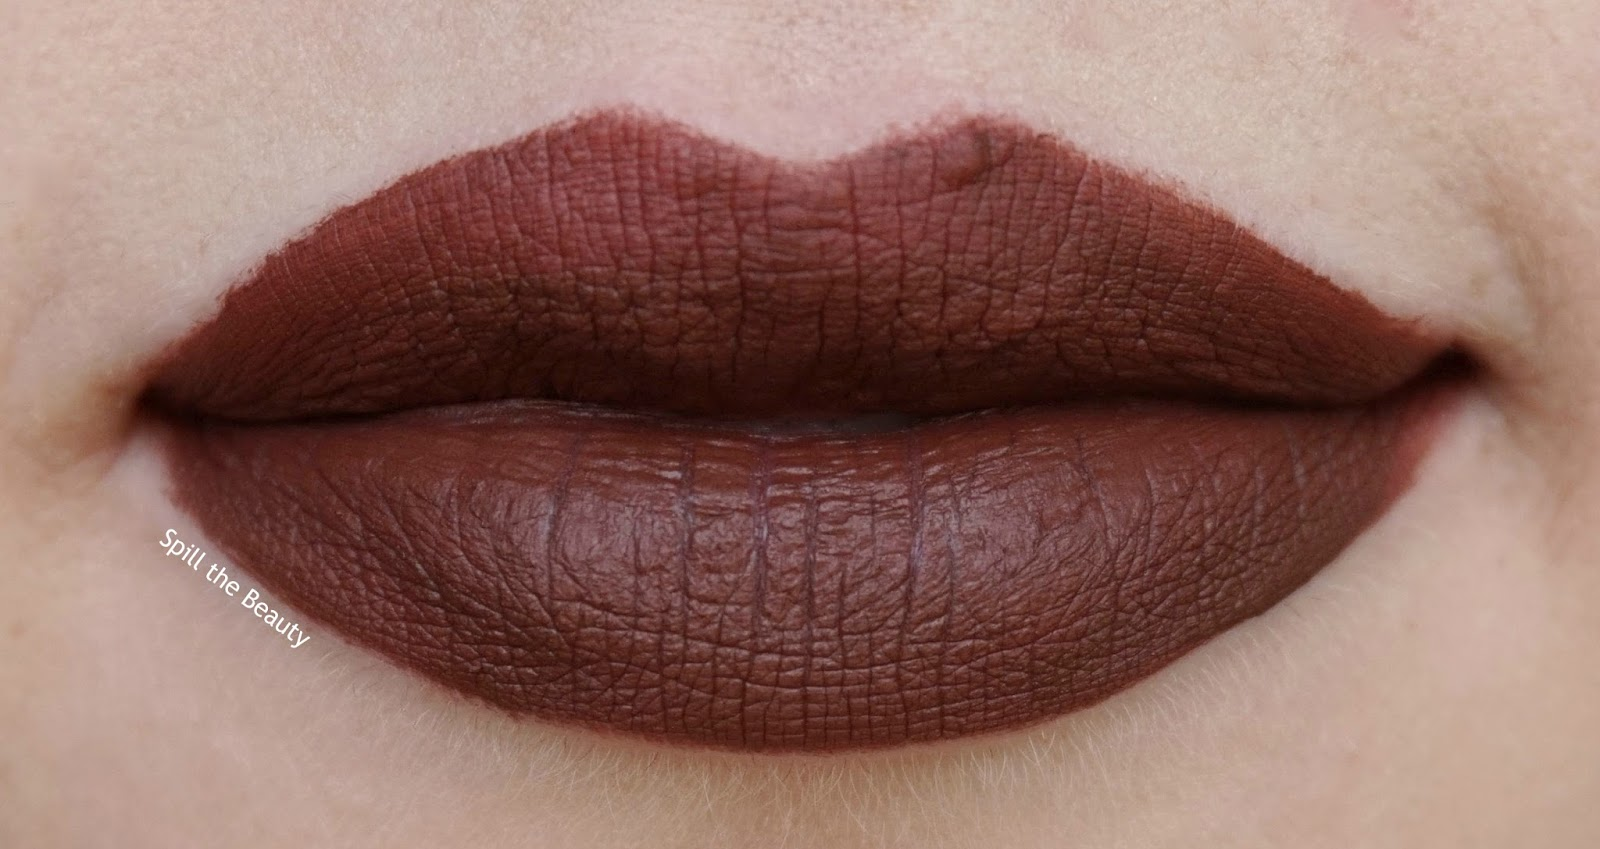 naughty by nature - lips too faced melted mattes review swatch